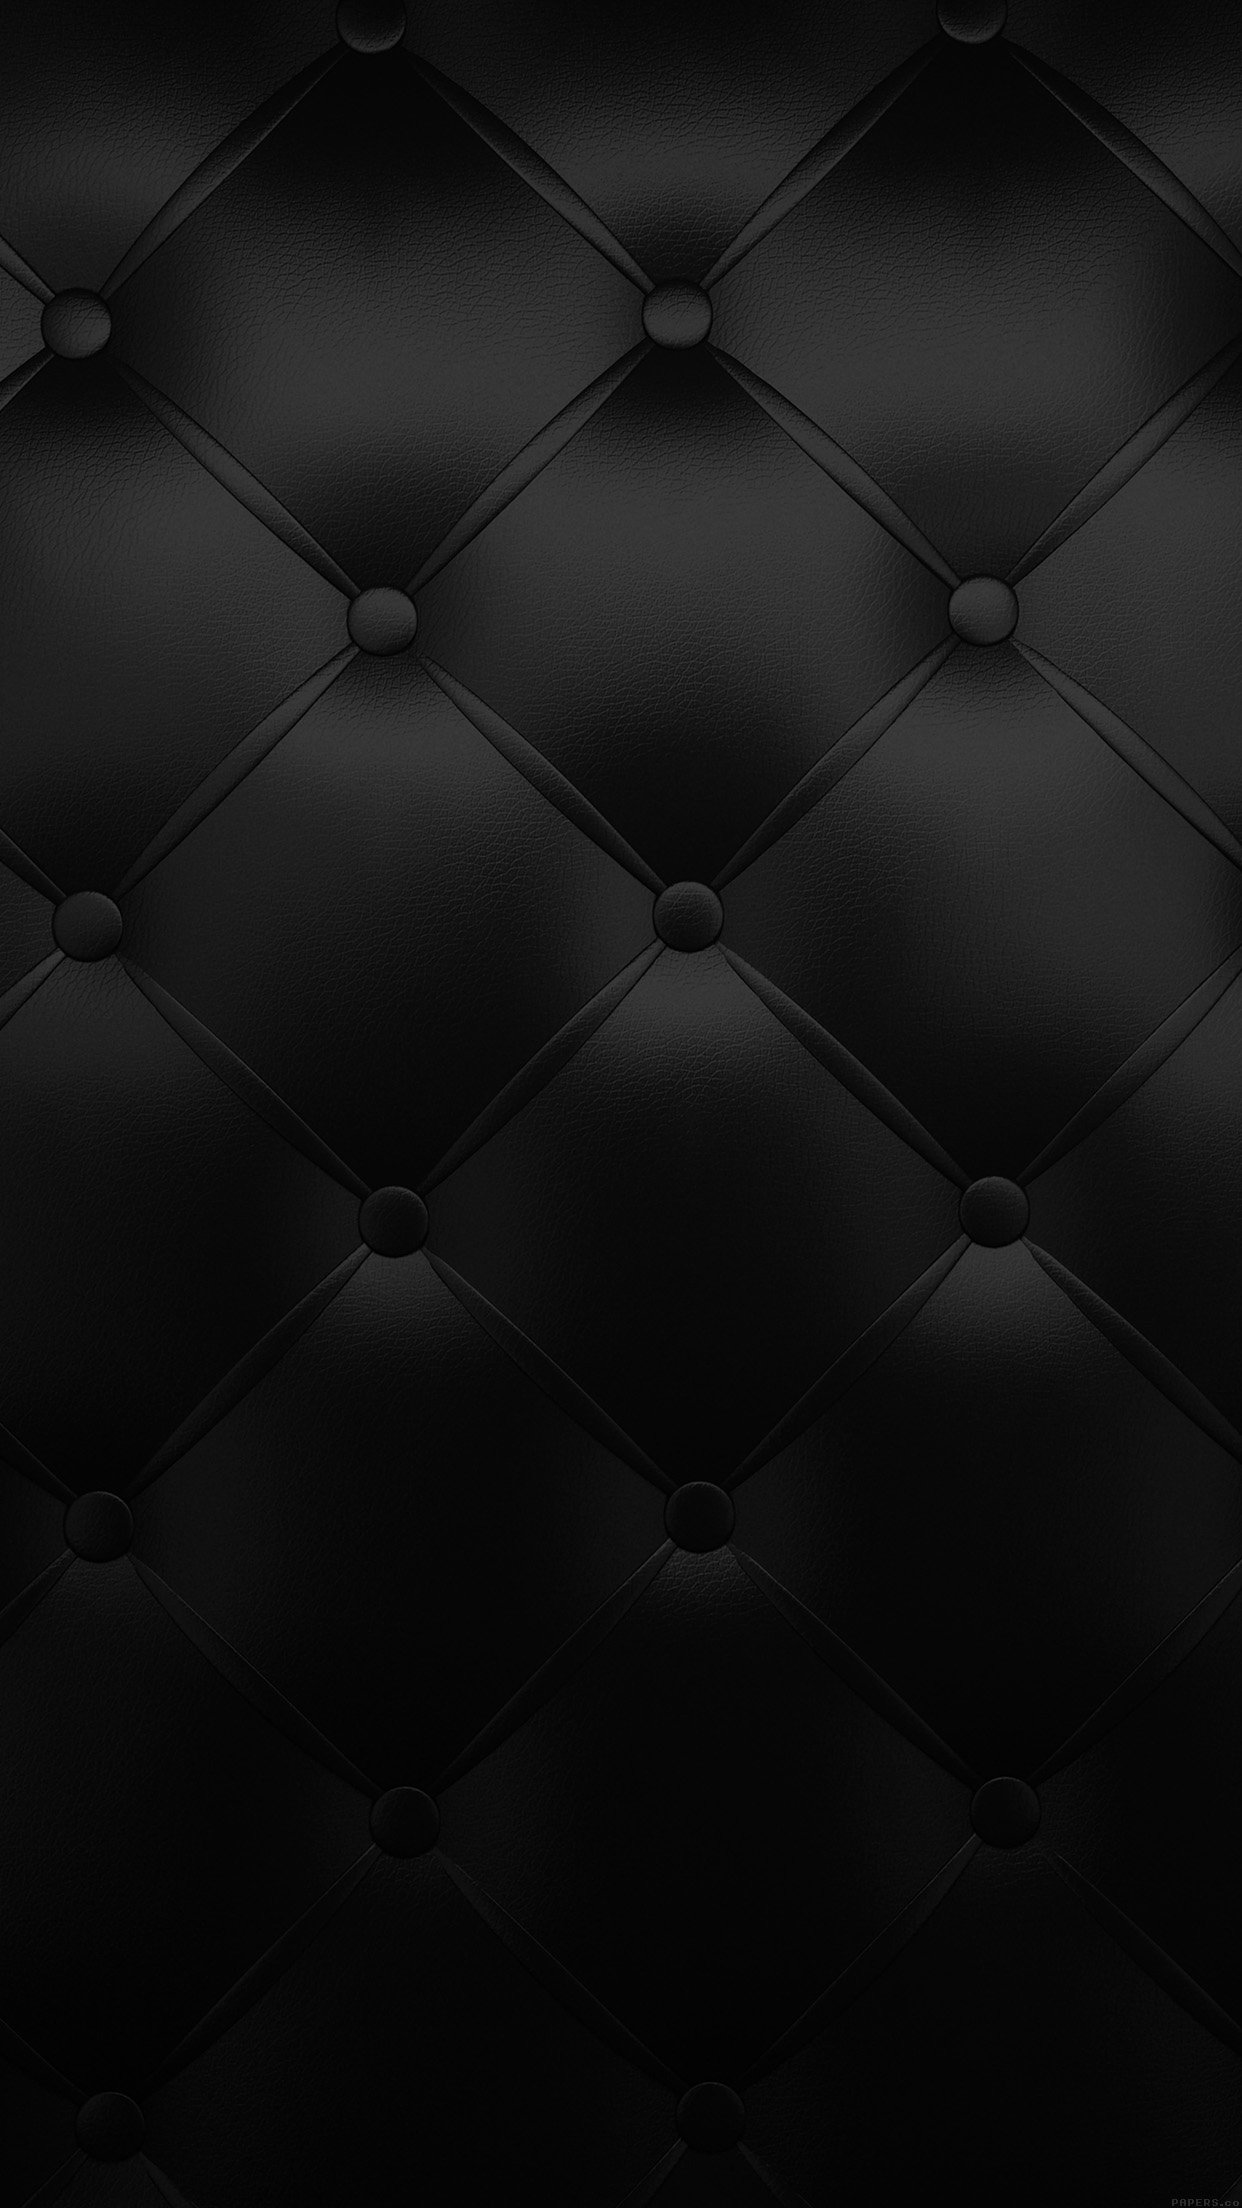 dark-wallpaper-applifevn-1